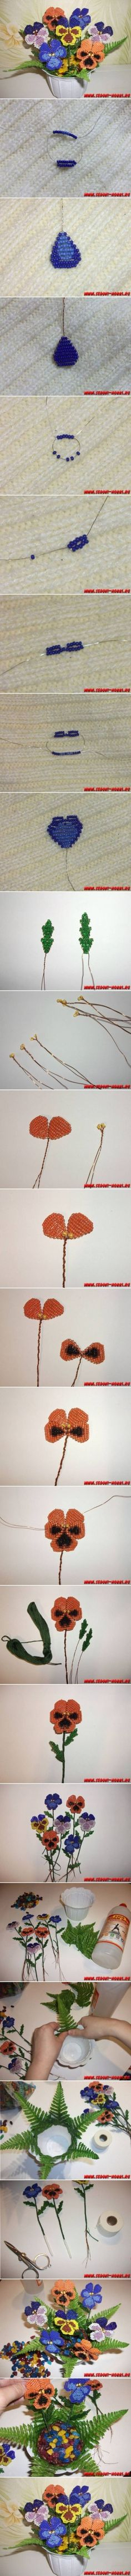 How To Make Beads Pansy Flower step by step DIY tutorial instructions, How to, how to do, diy instructions, crafts, do it yourself, diy webs by Mary Smith fSesz